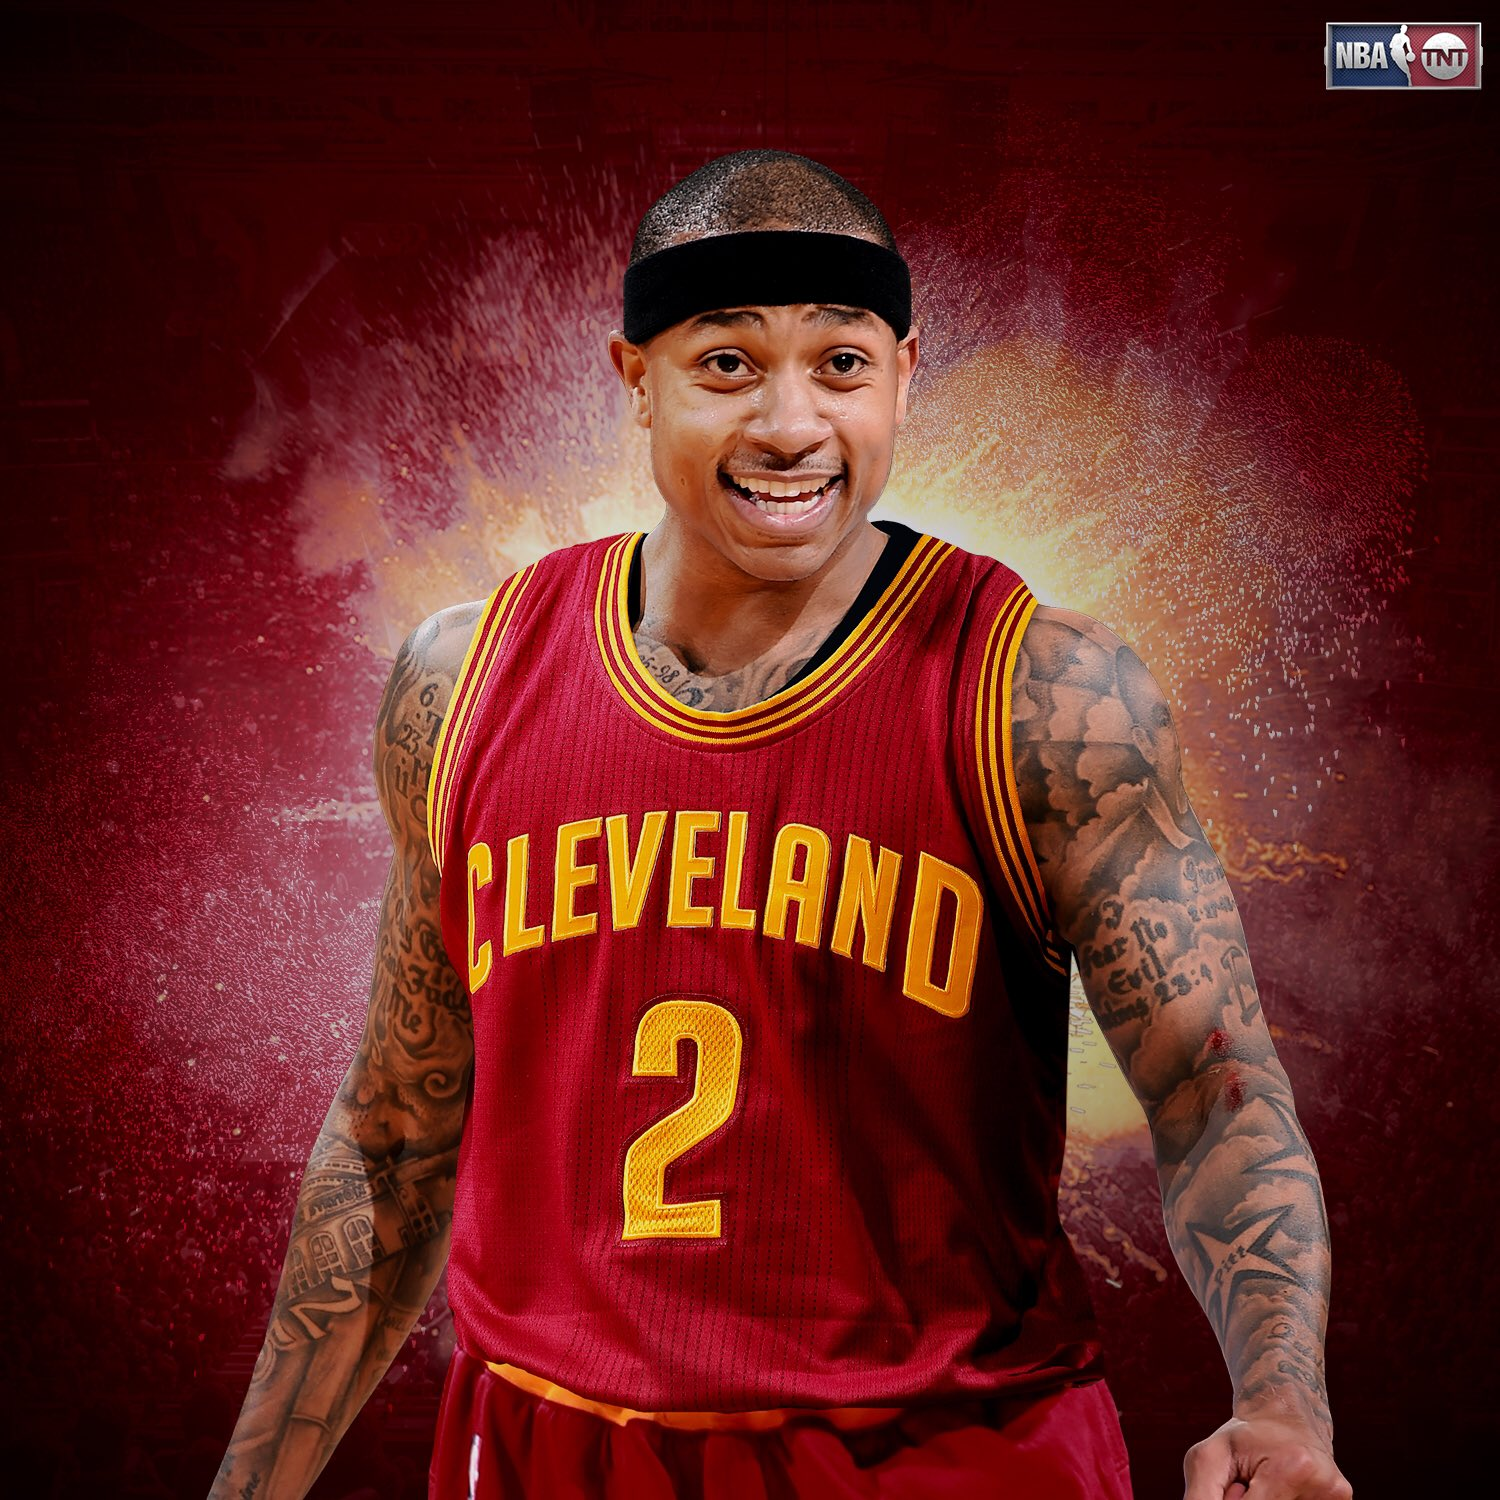 The King of the Fourth will join @KingJames in Cleveland ���� https://t.co/vYrwyAWHiB